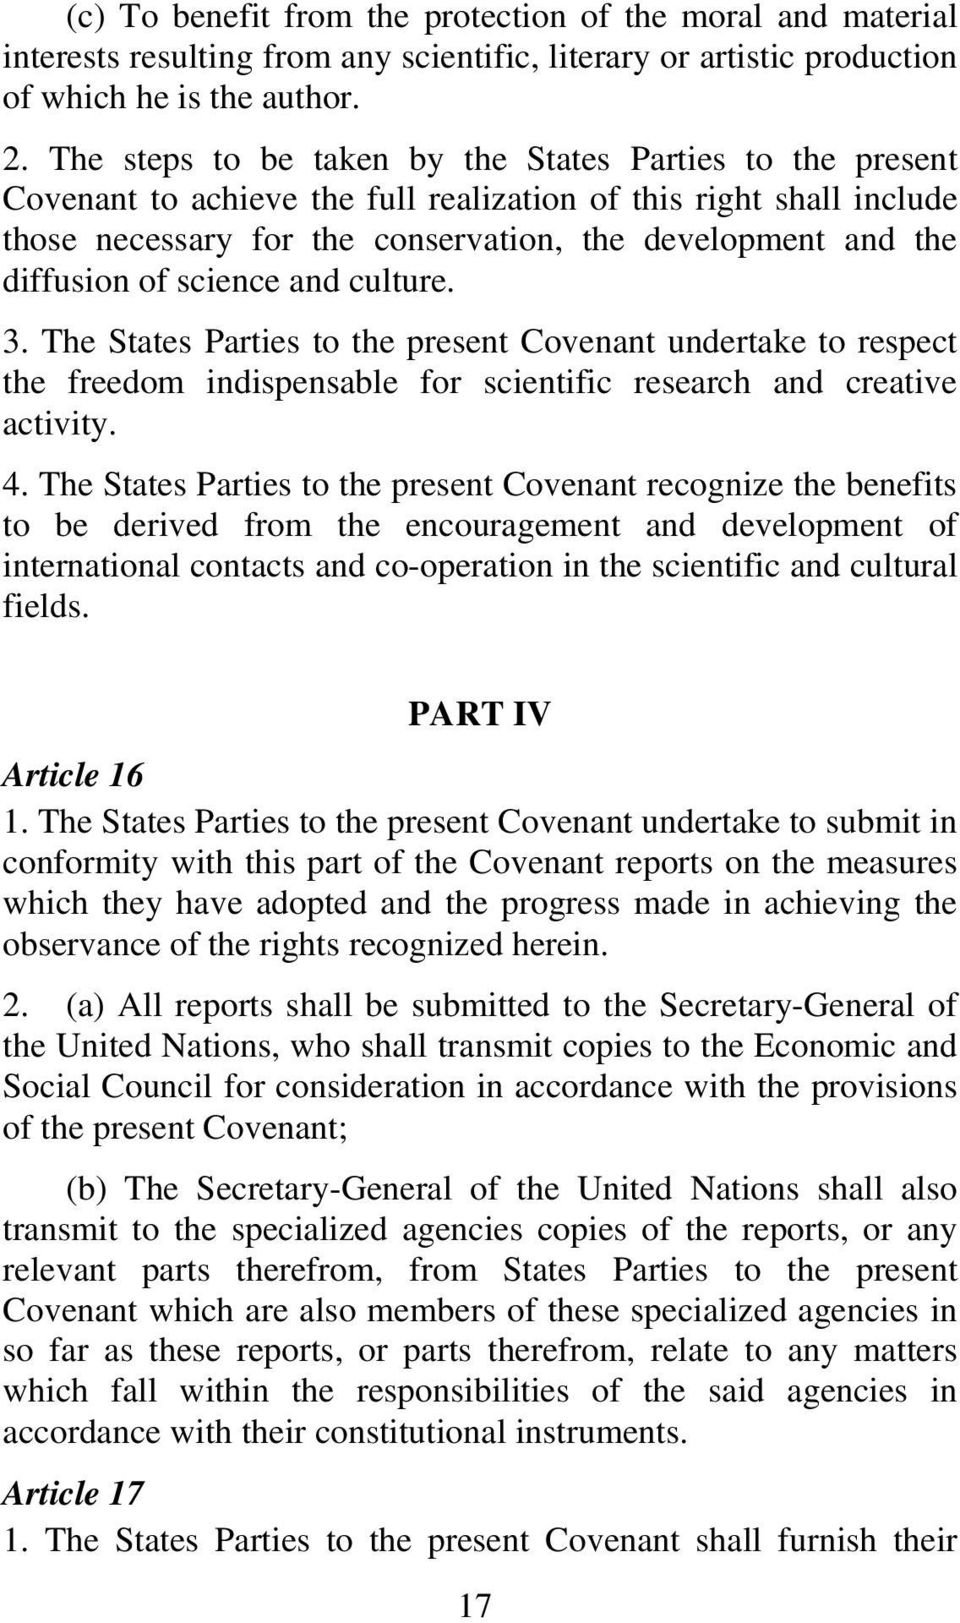 of science and culture. 3. The States Parties to the present Covenant undertake to respect the freedom indispensable for scientific research and creative activity. 4.